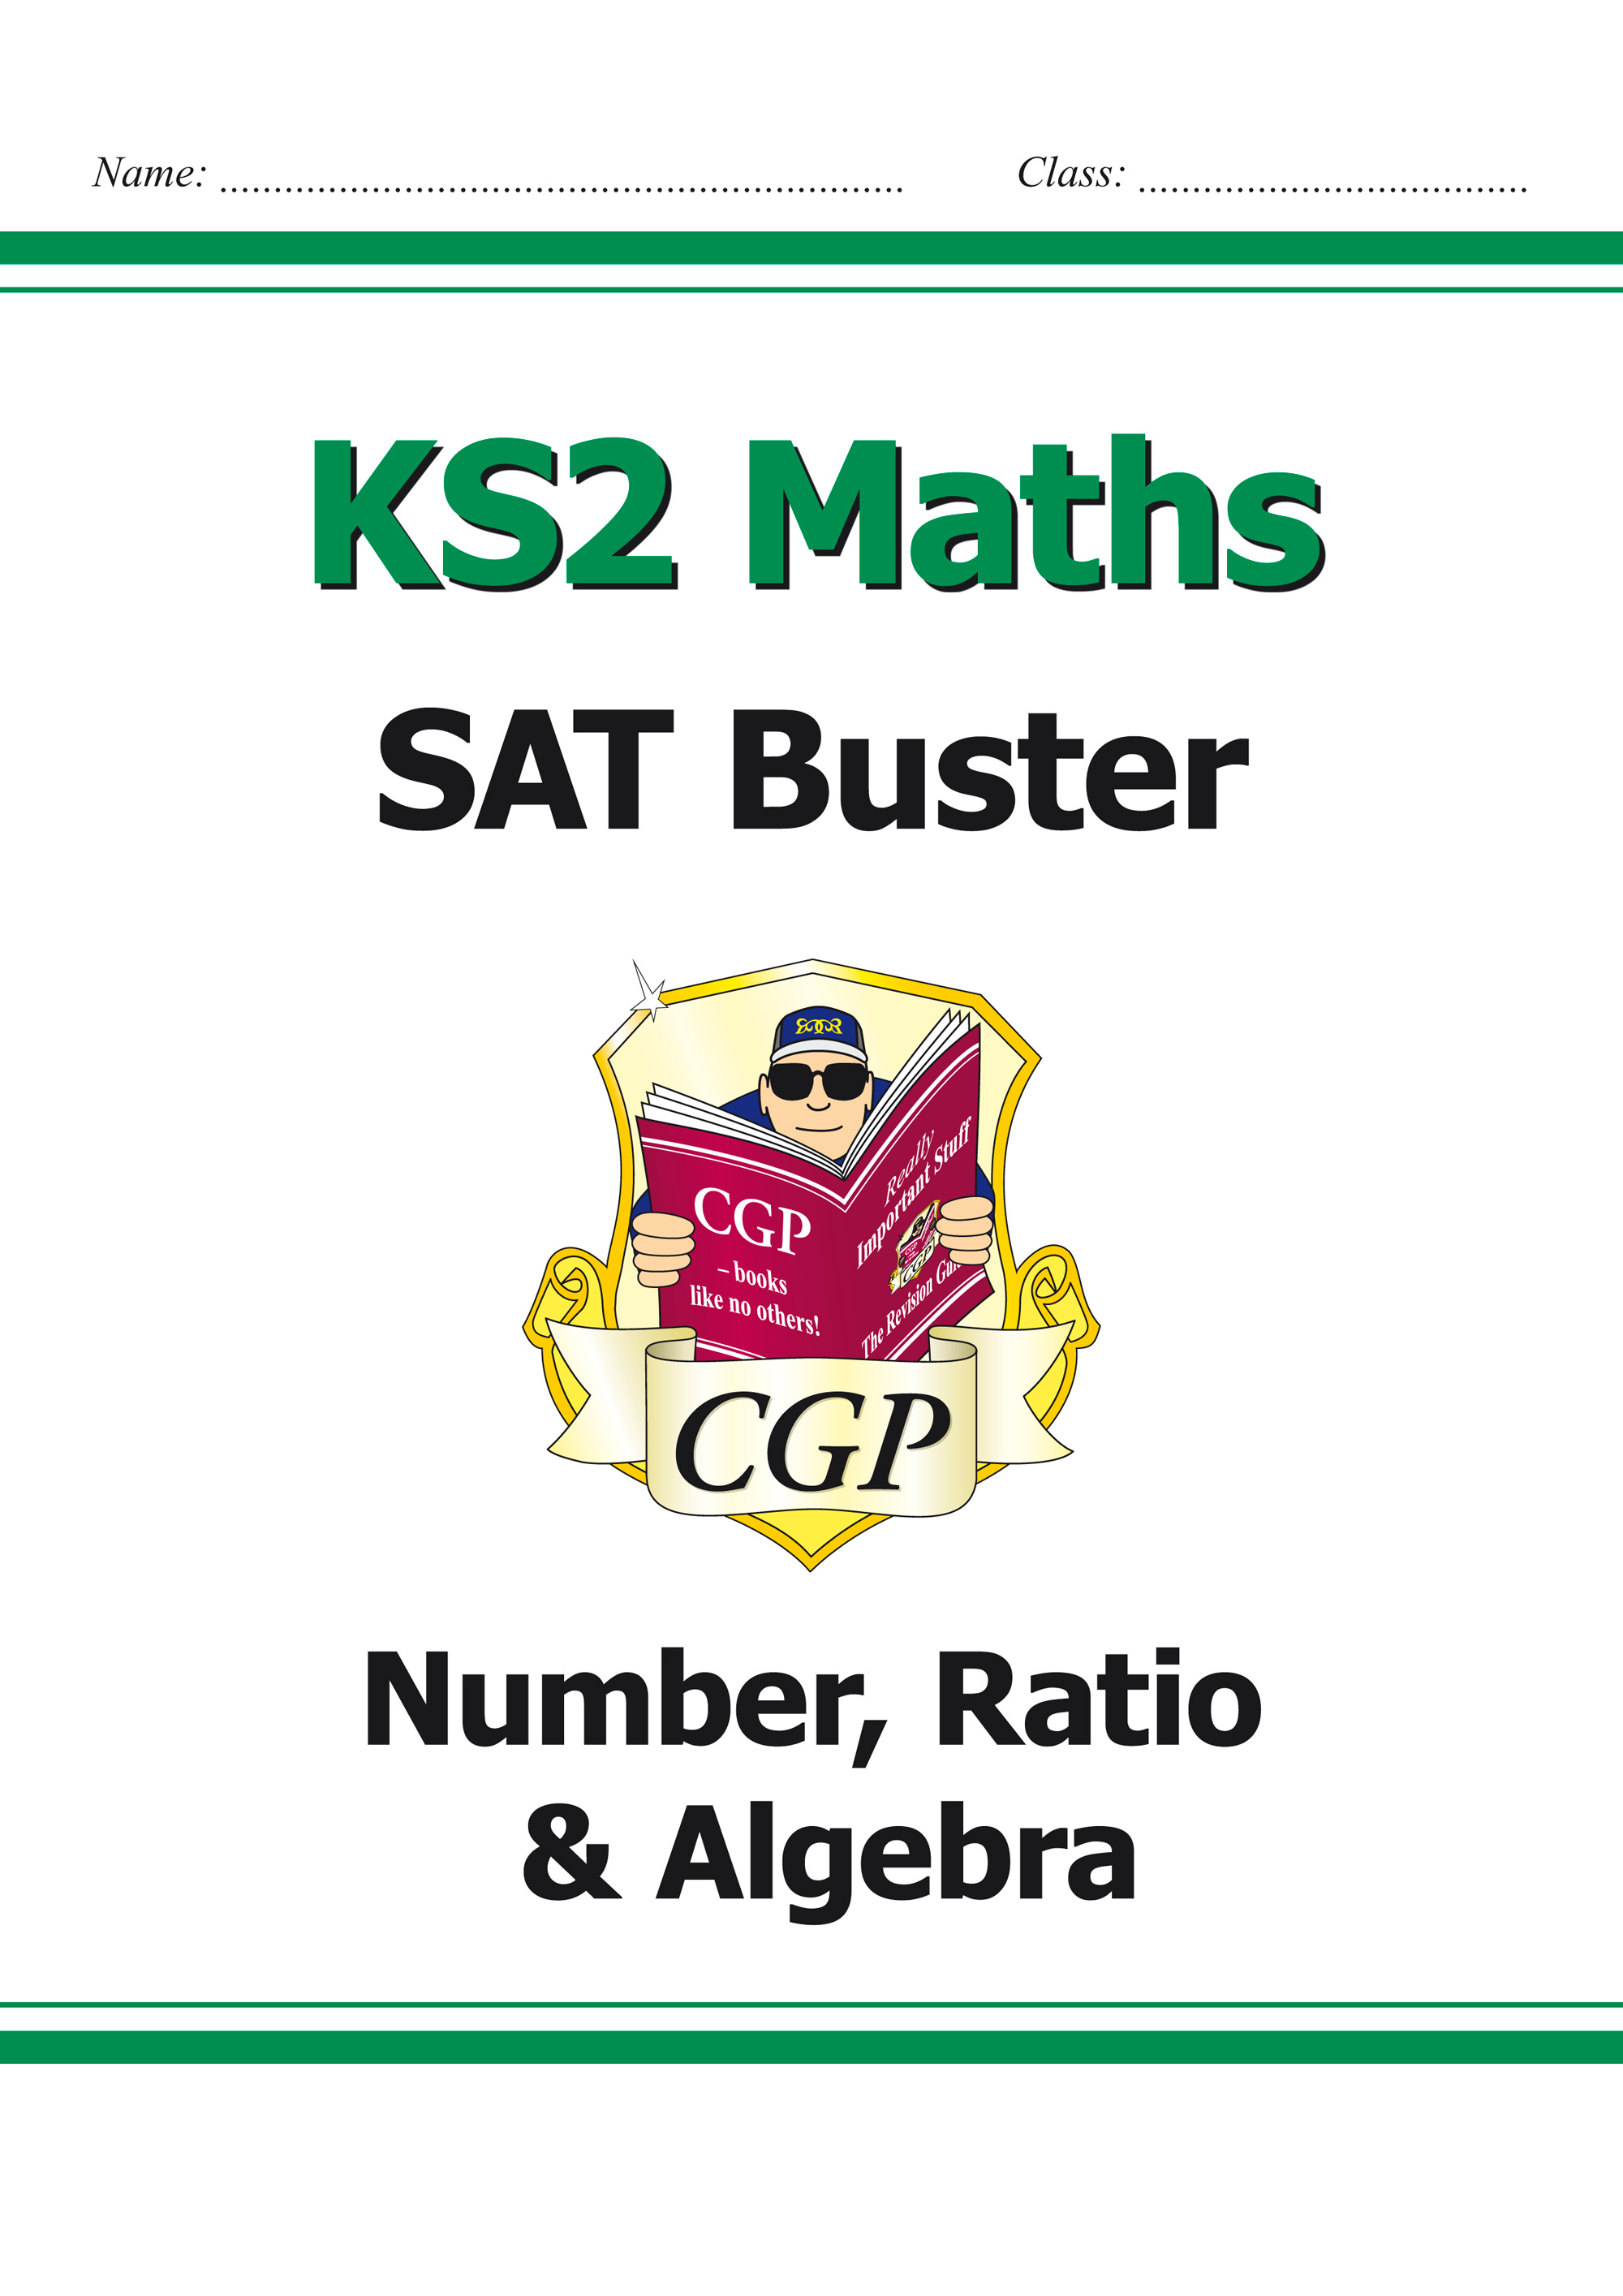 M6N23 - KS2 Maths SAT Buster: Number, Ratio & Algebra Book 1 (for tests in 2019)